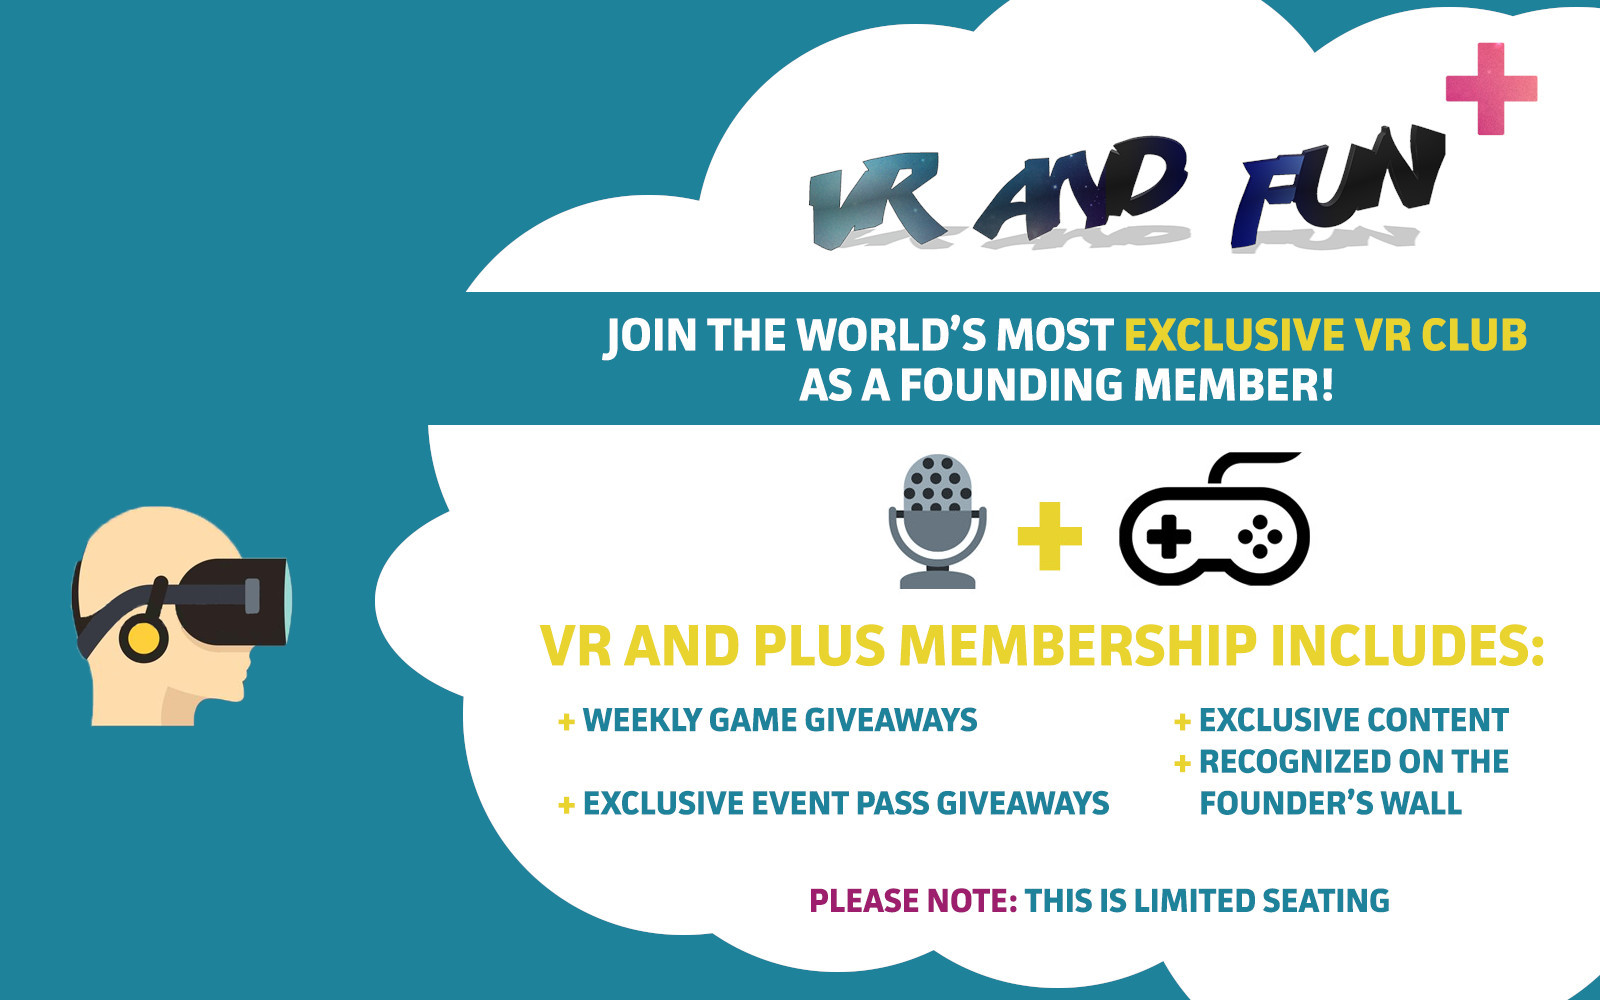 We're Giving Away Weekly VR Games – VR AND FUN PLUS